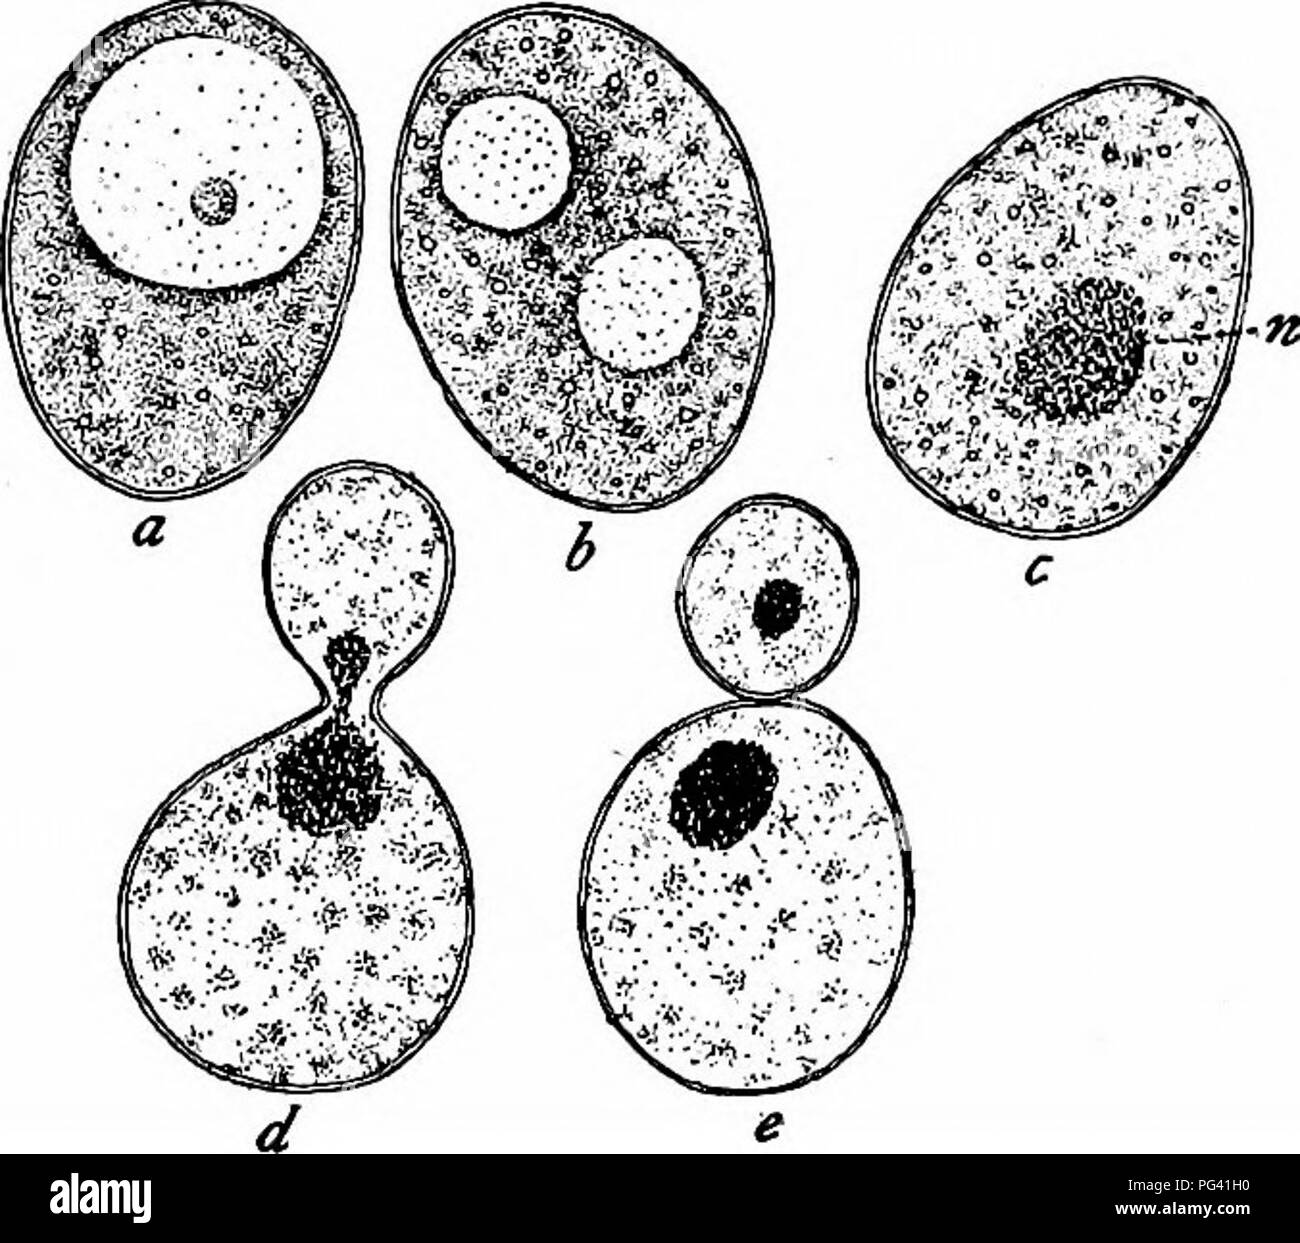 Yeast Cell Stock Photos Yeast Cell Stock Images Alamy